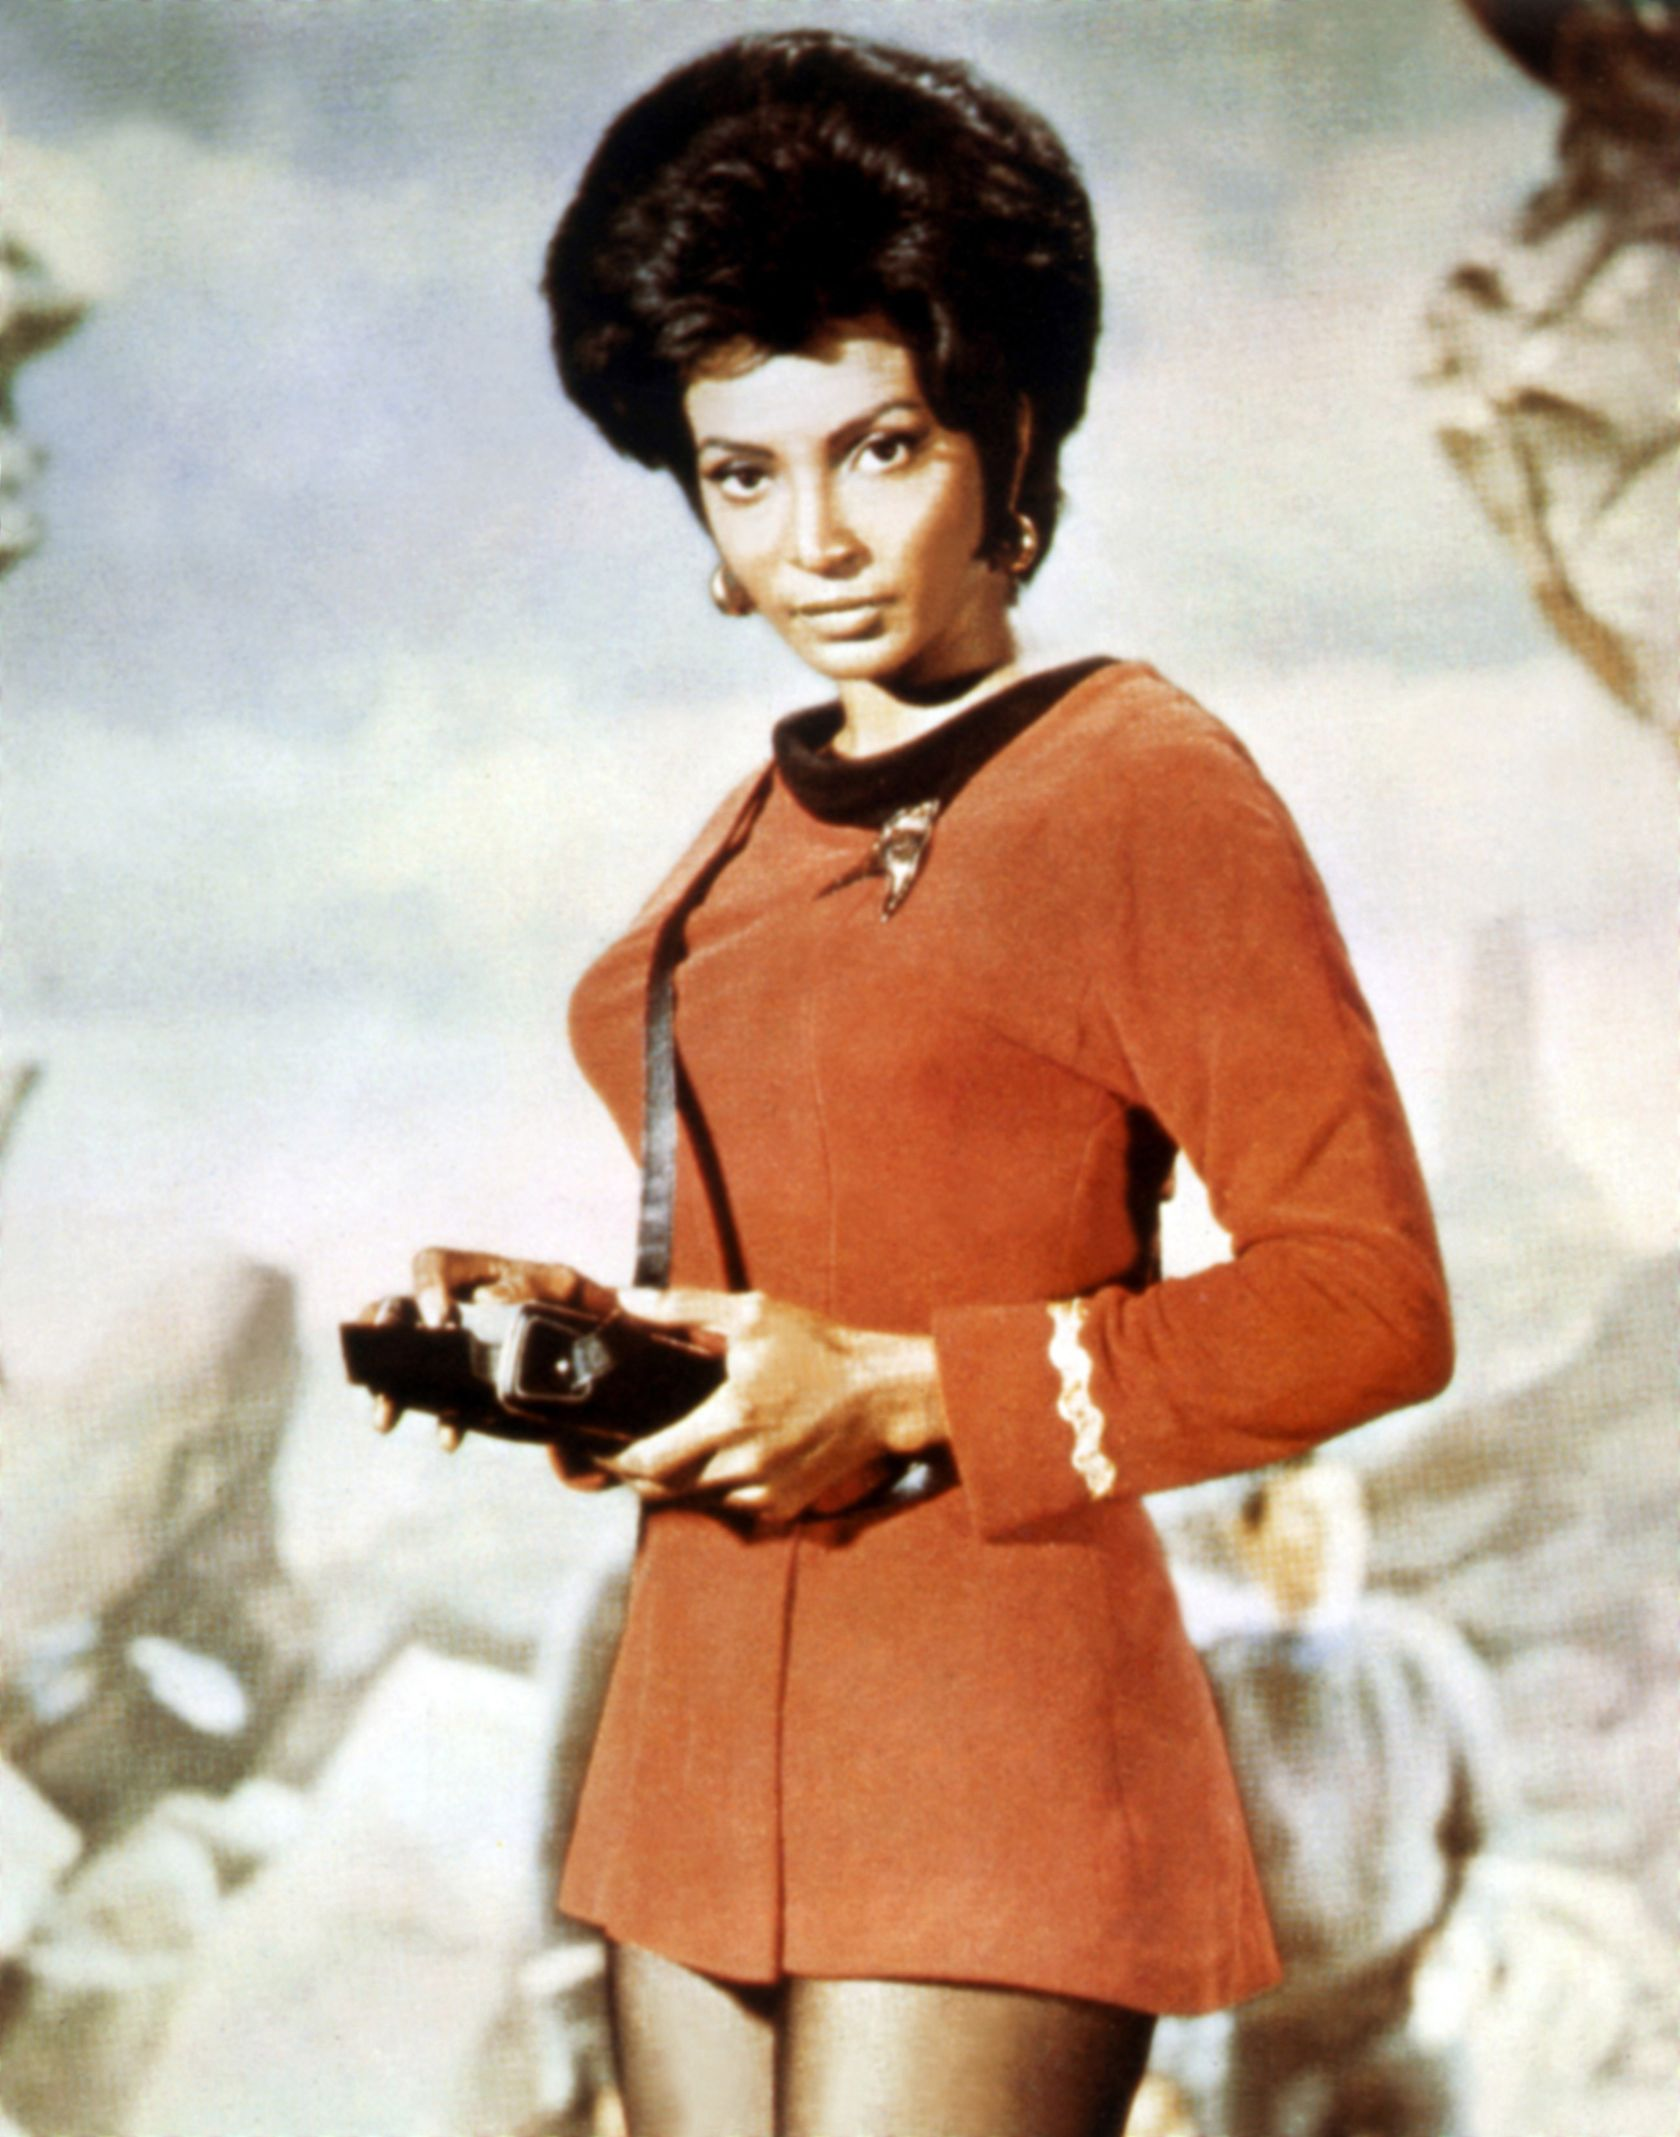 Nichelle Nichols nude (92 foto and video), Topless, Leaked, Instagram, legs 2006